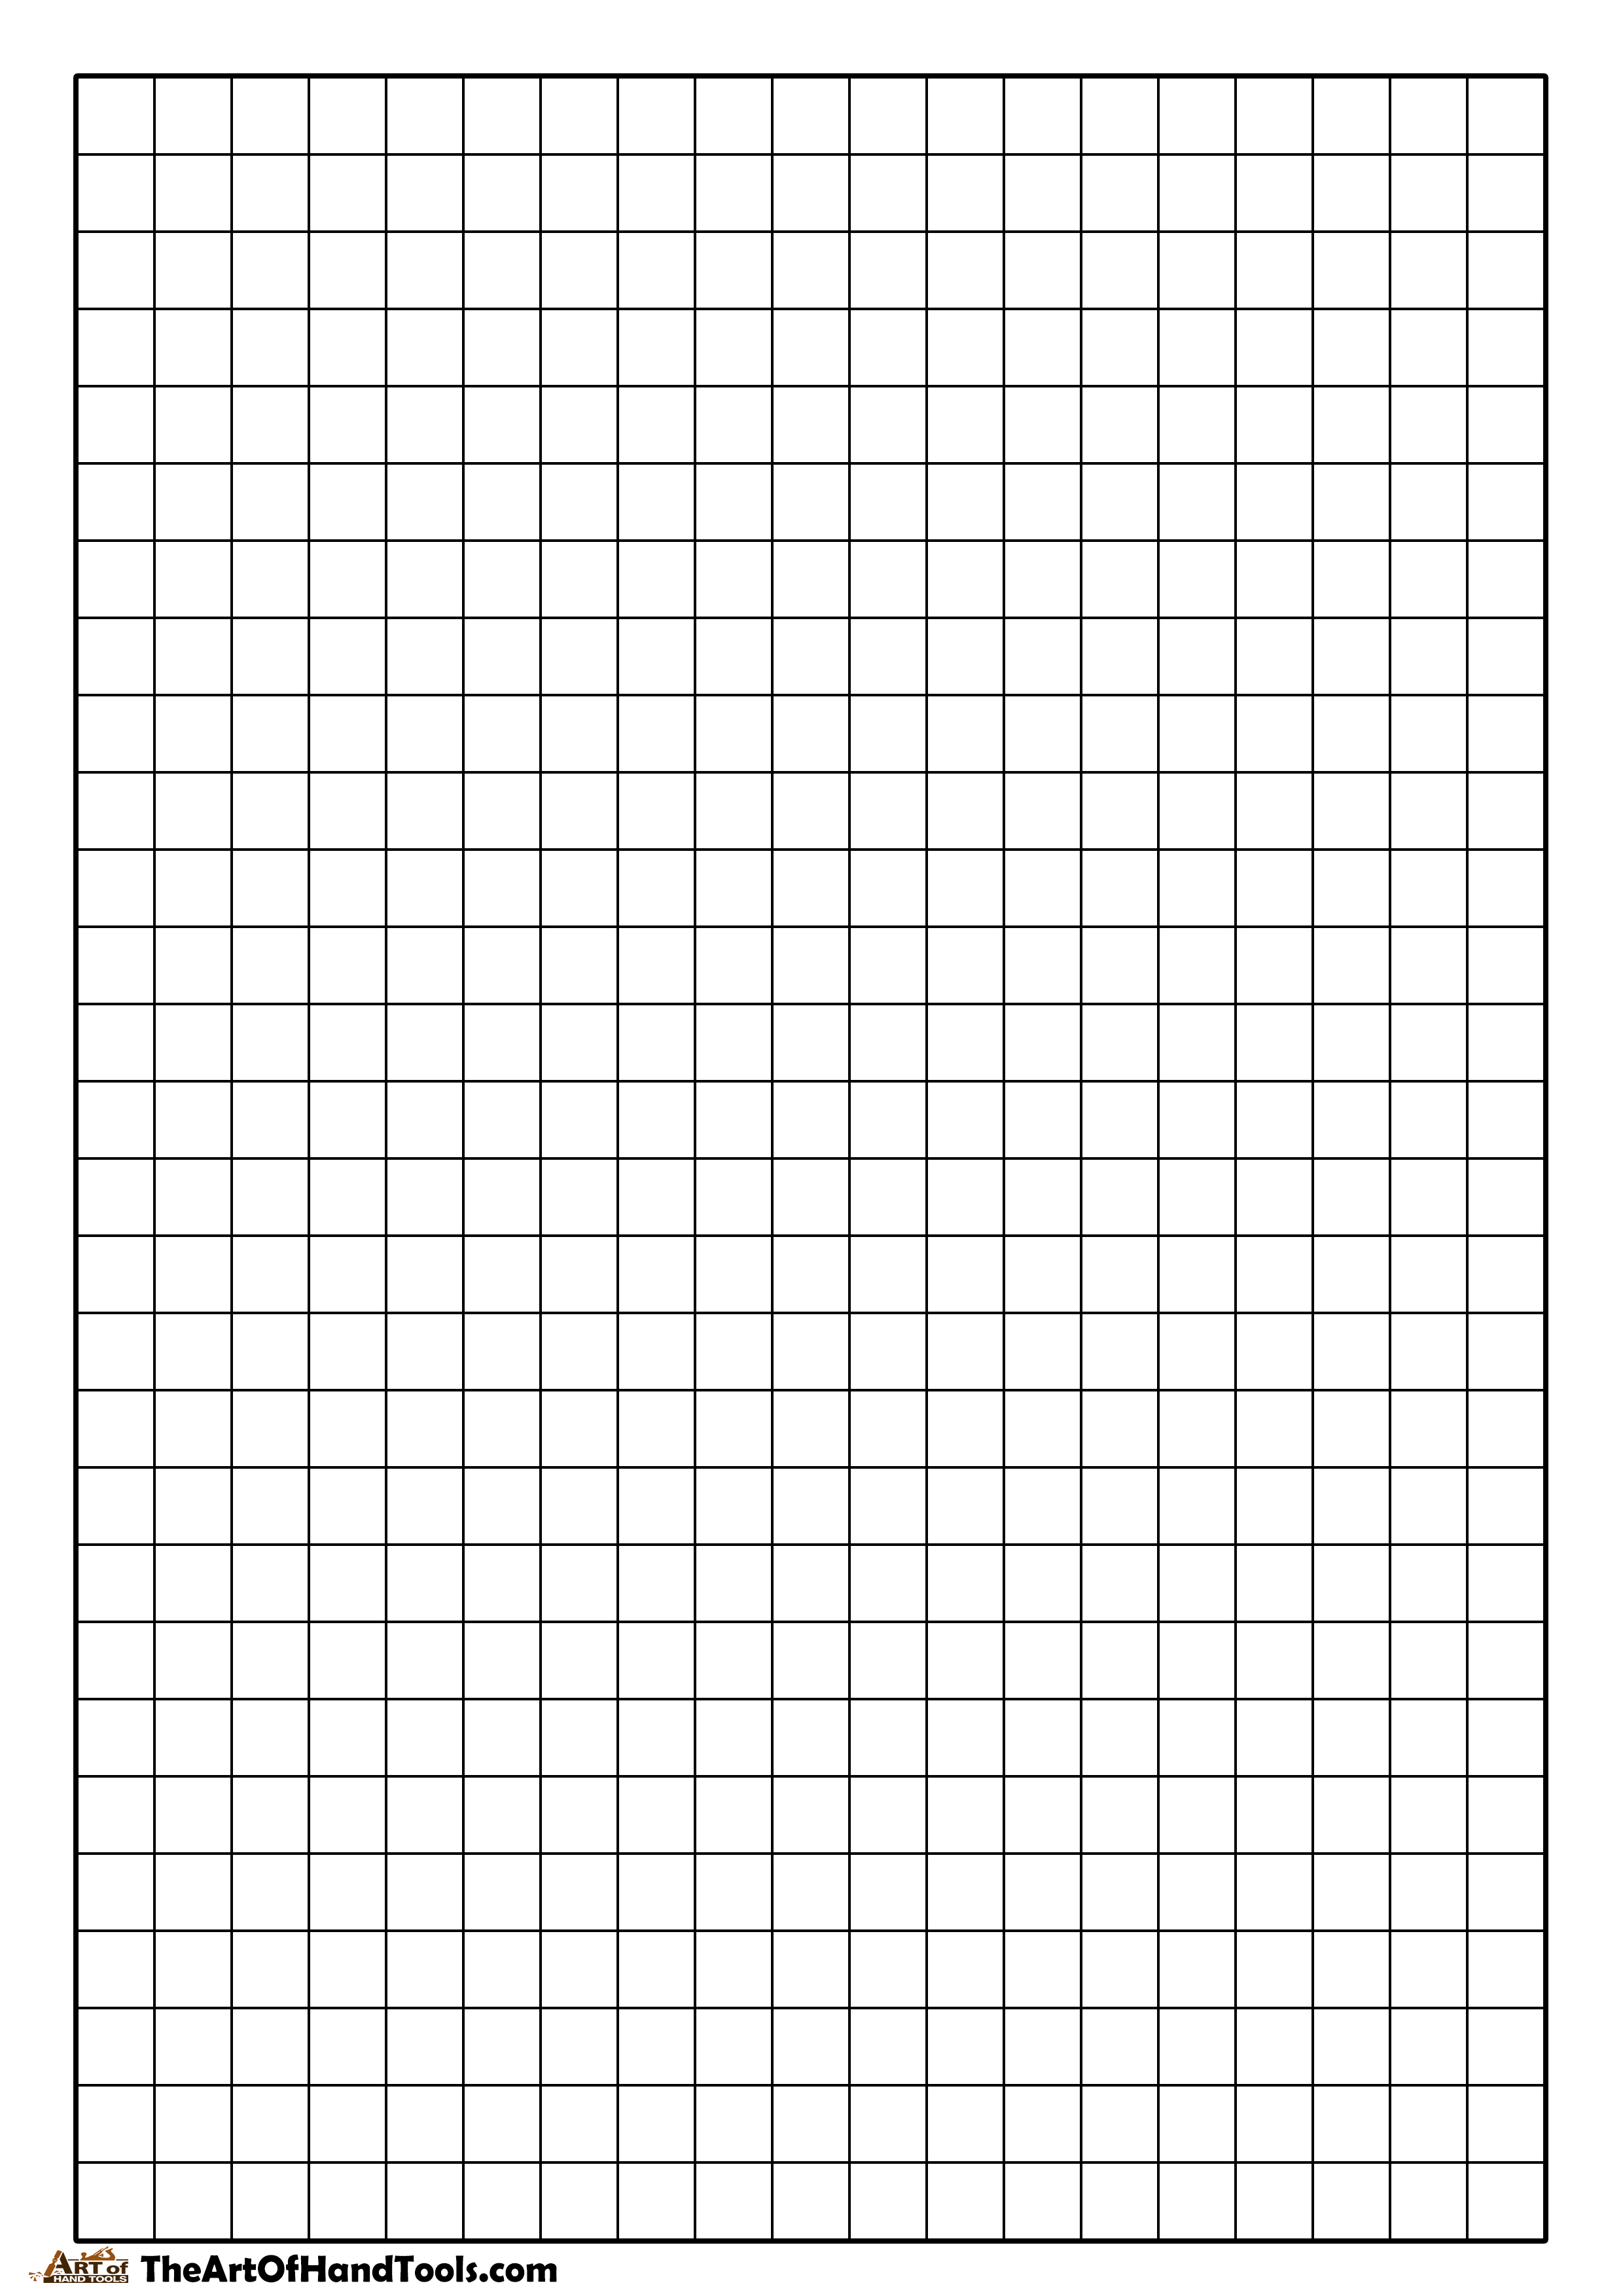 Blank graph paper ready for shop layout. Head over to the